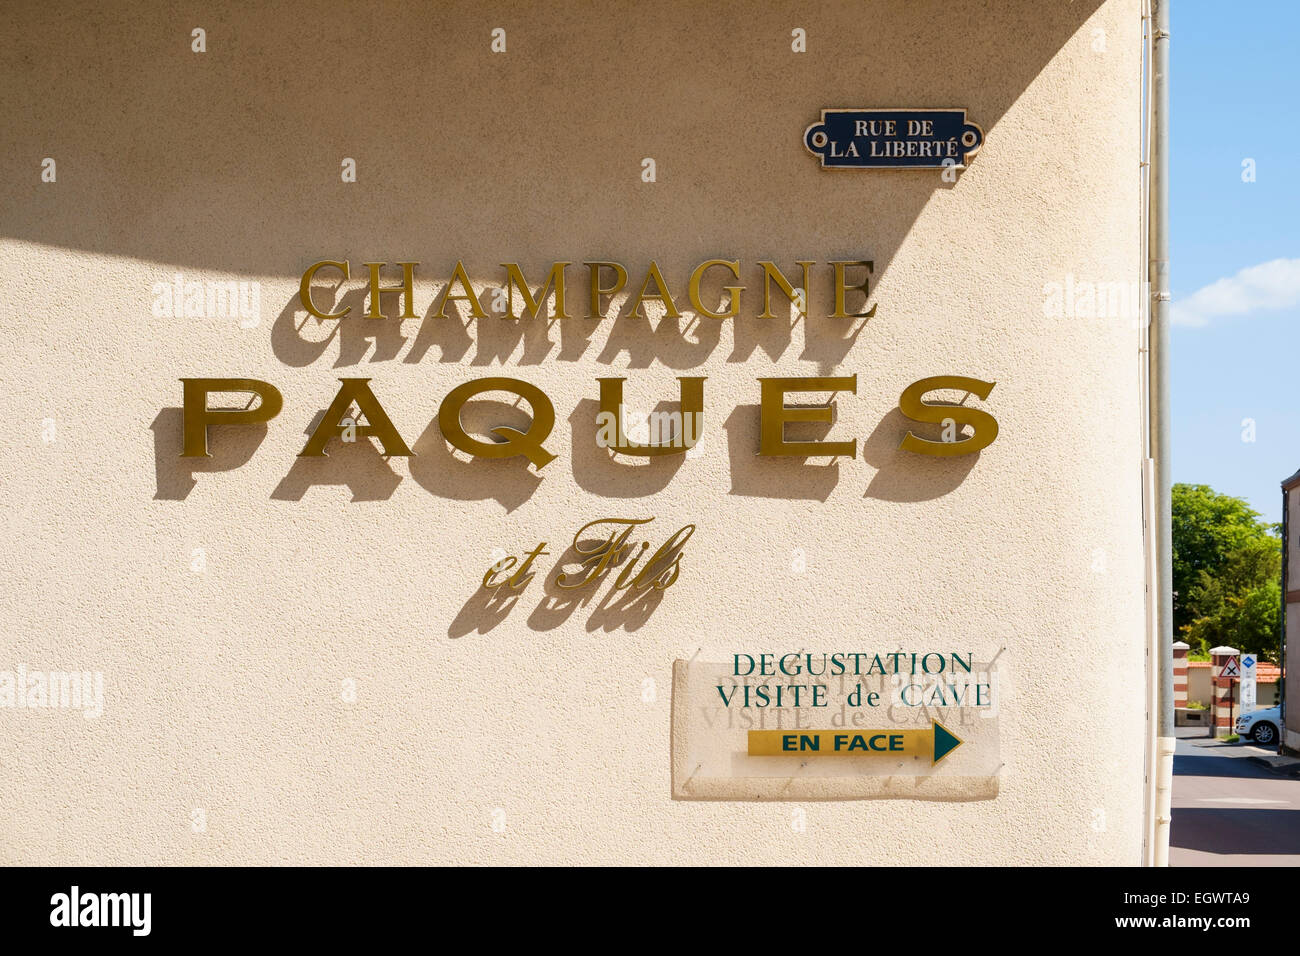 Champagne House Paques - a wine grower in Rilly la Montagne, Champagne, France, Europe - Stock Image